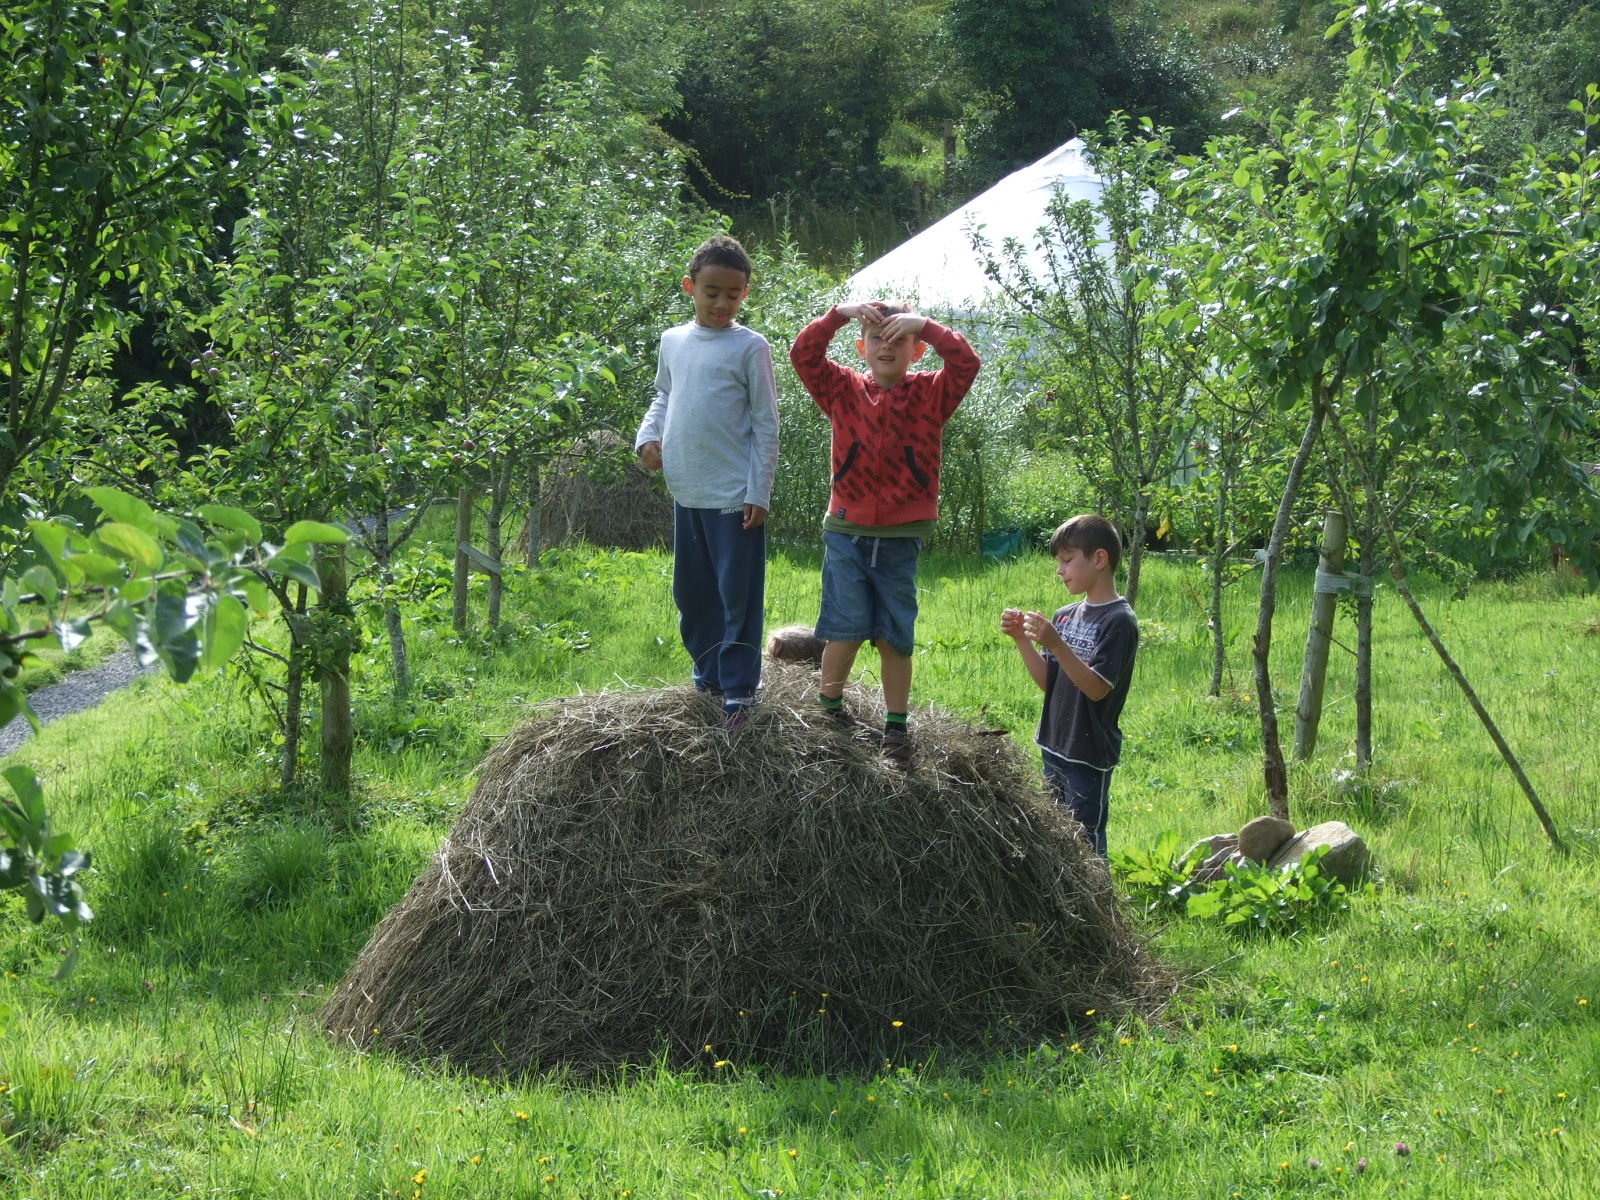 Play time in The Orchard at Luxury Campsite